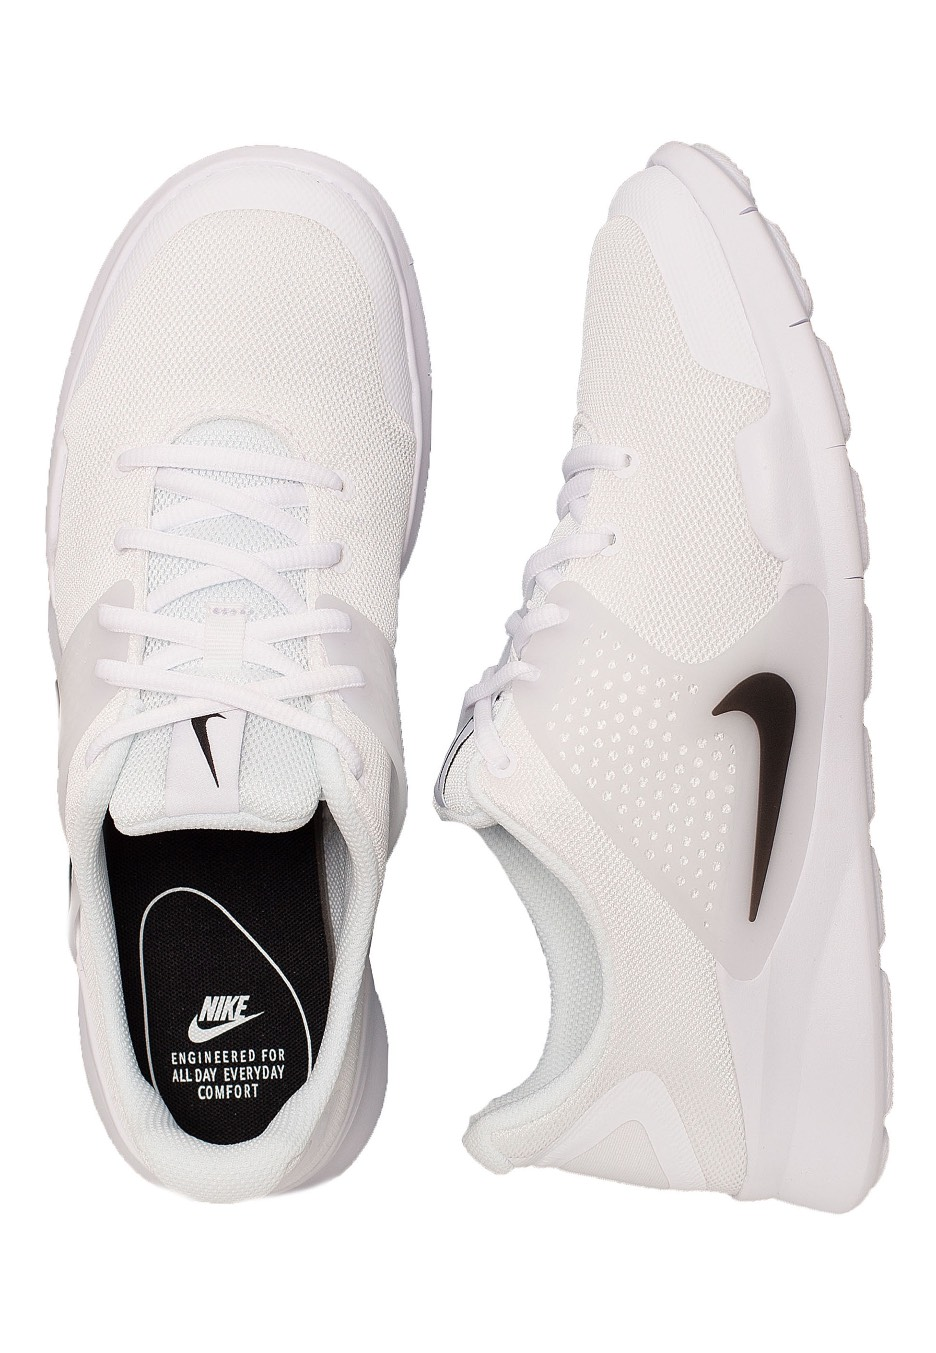 san francisco c3d3a ee447 Nike - Arrowz White Black - Shoes - Impericon.com AU